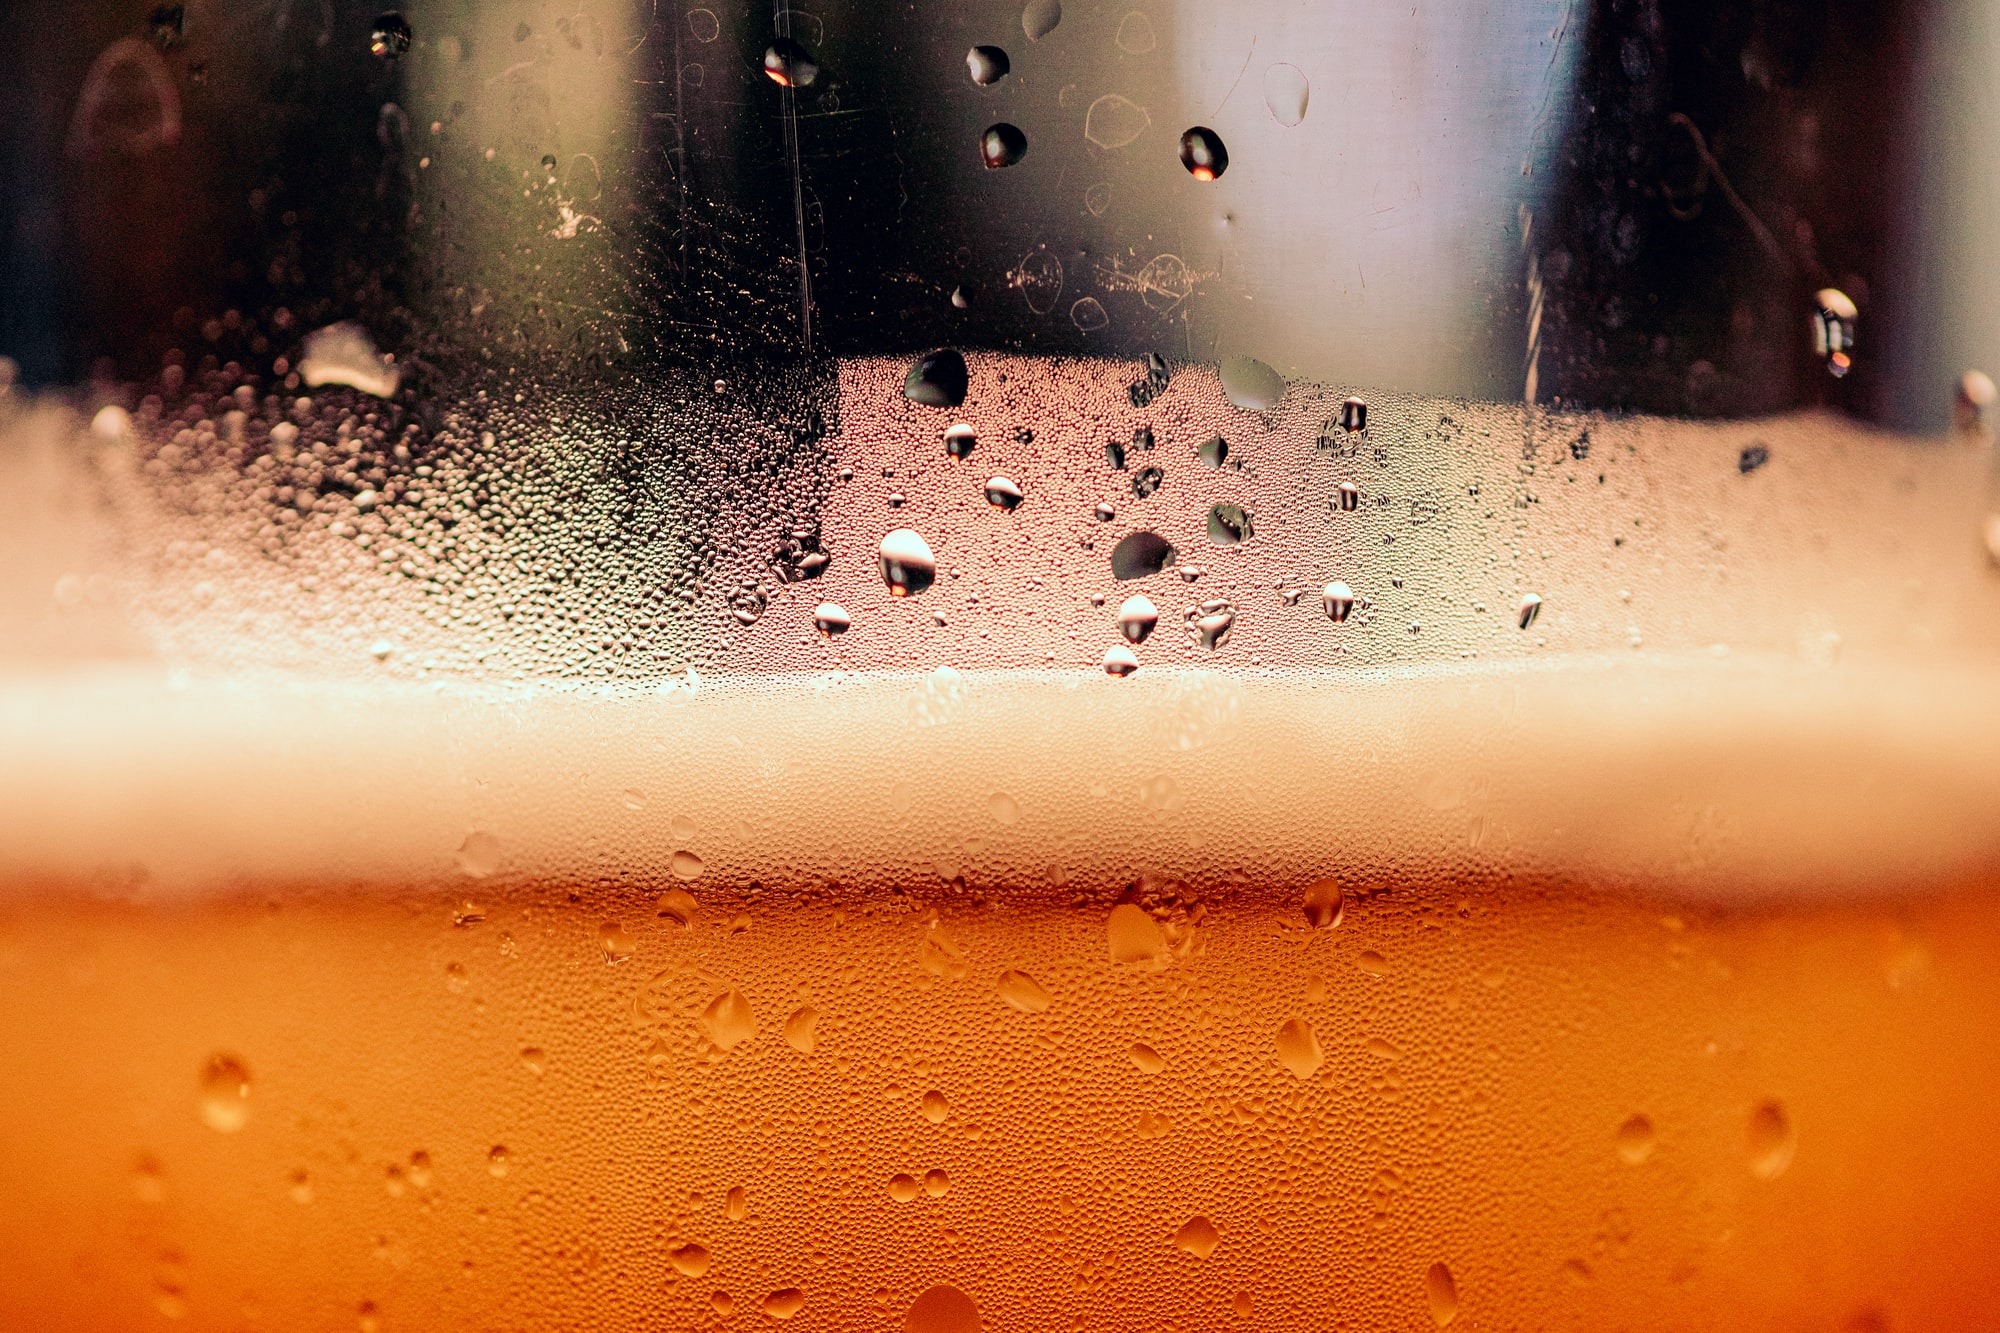 Carbs and Calories in Craft Beer